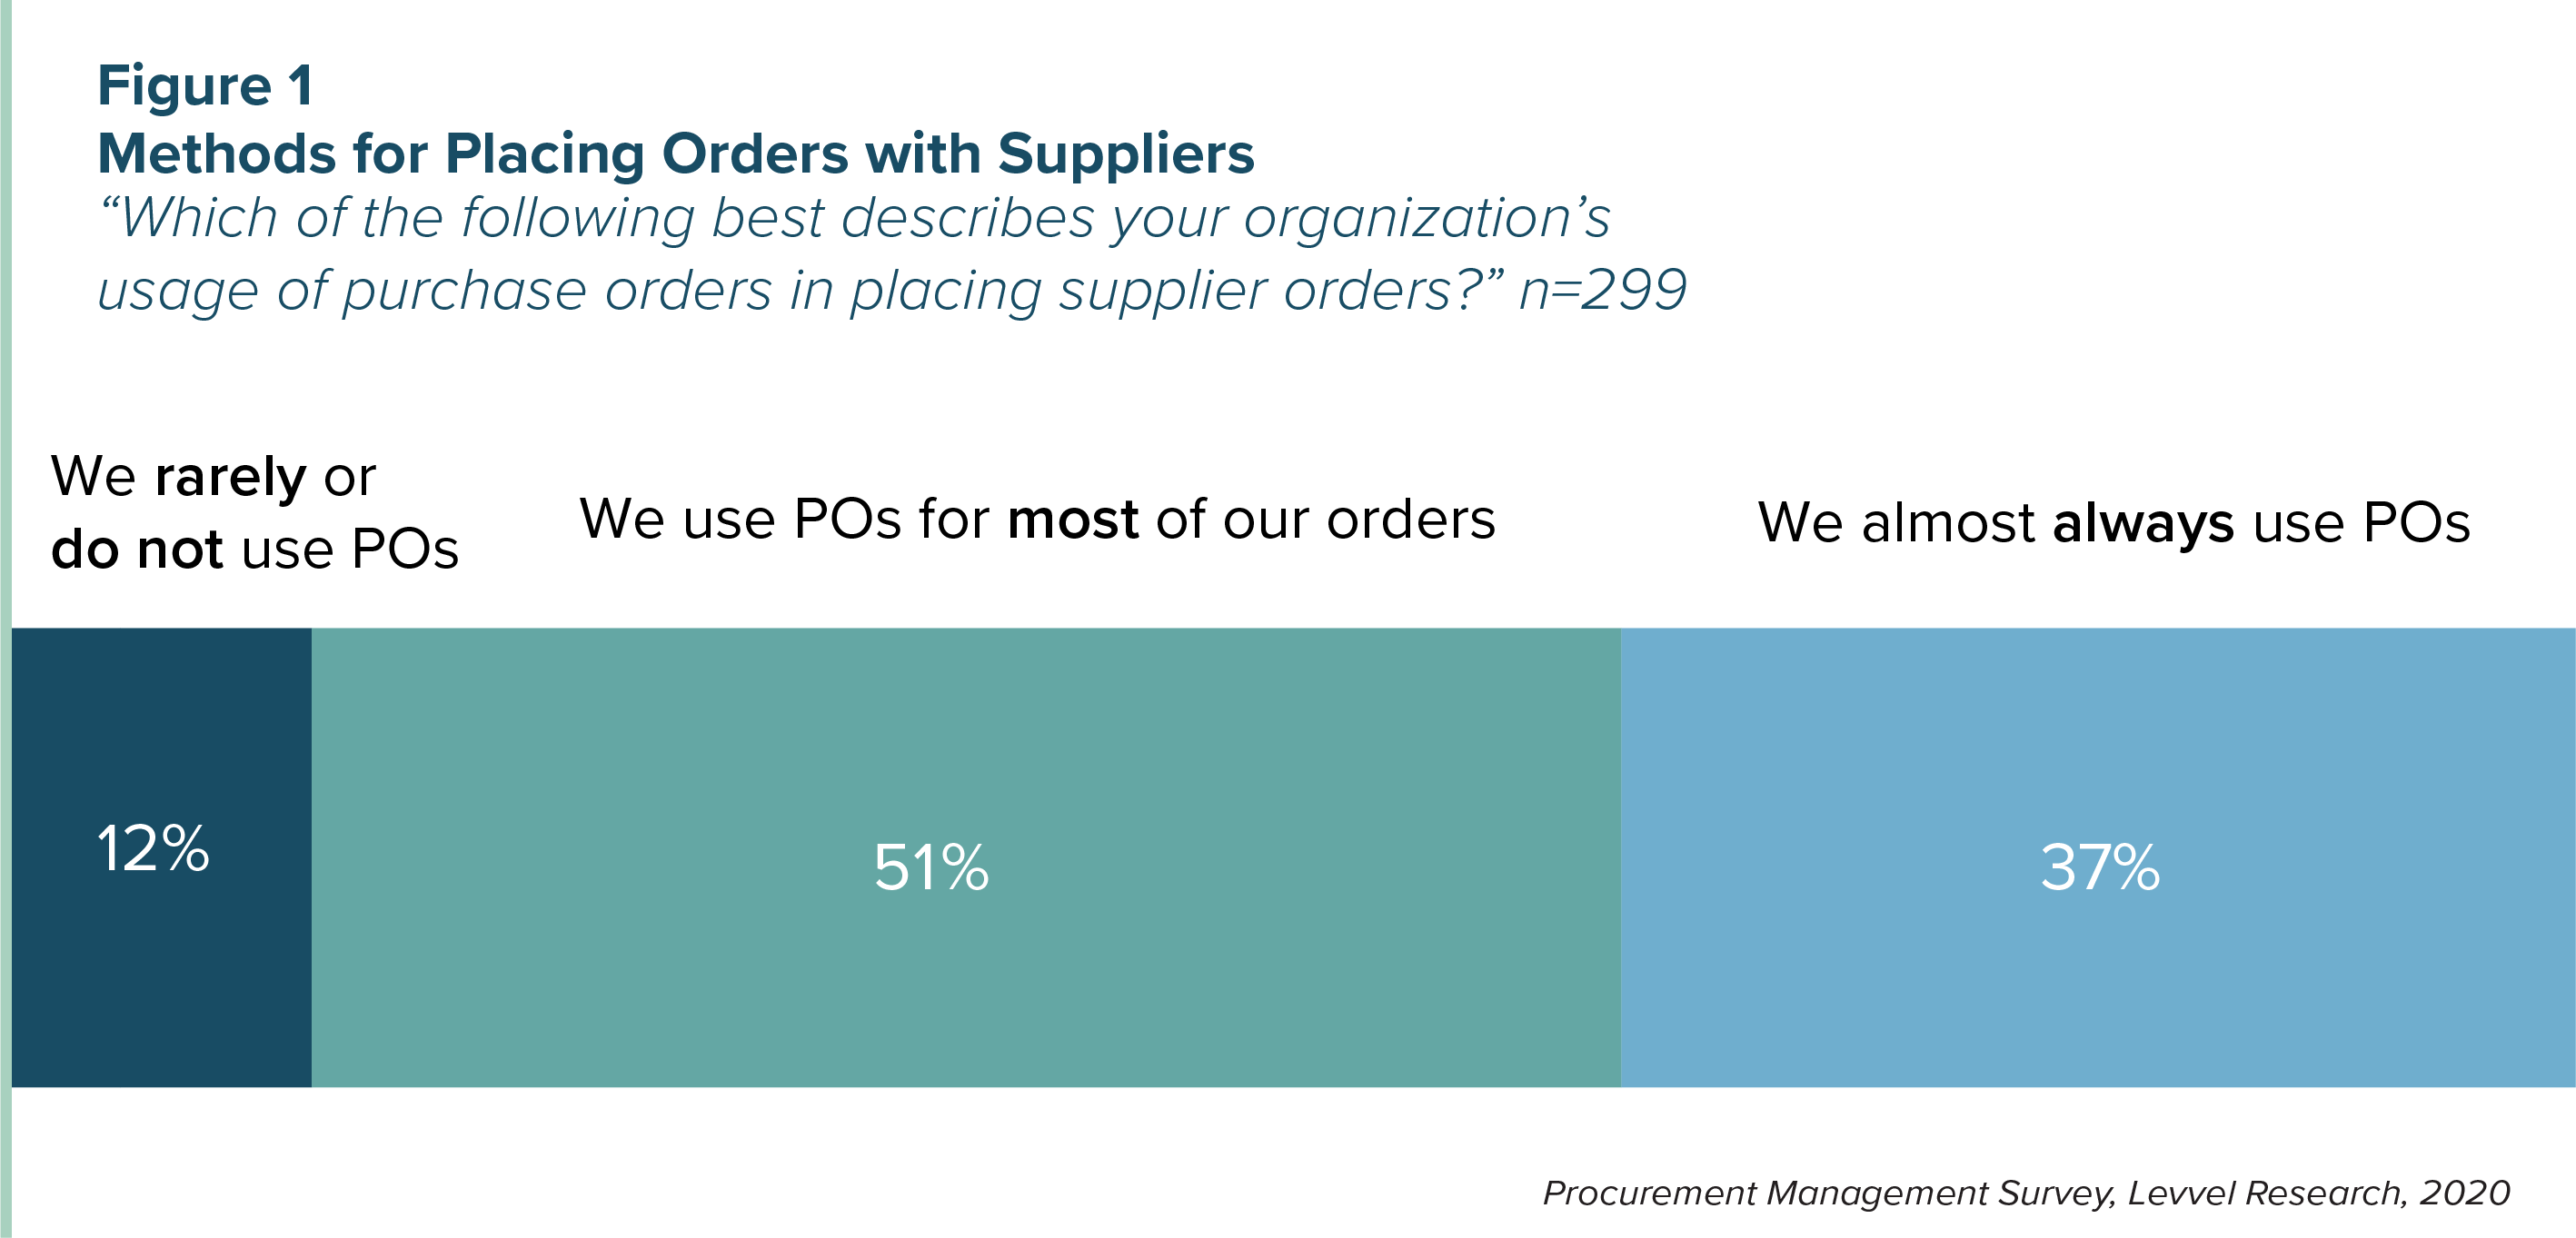 Figure 1 - Methods for Placing Orders with Suppliers